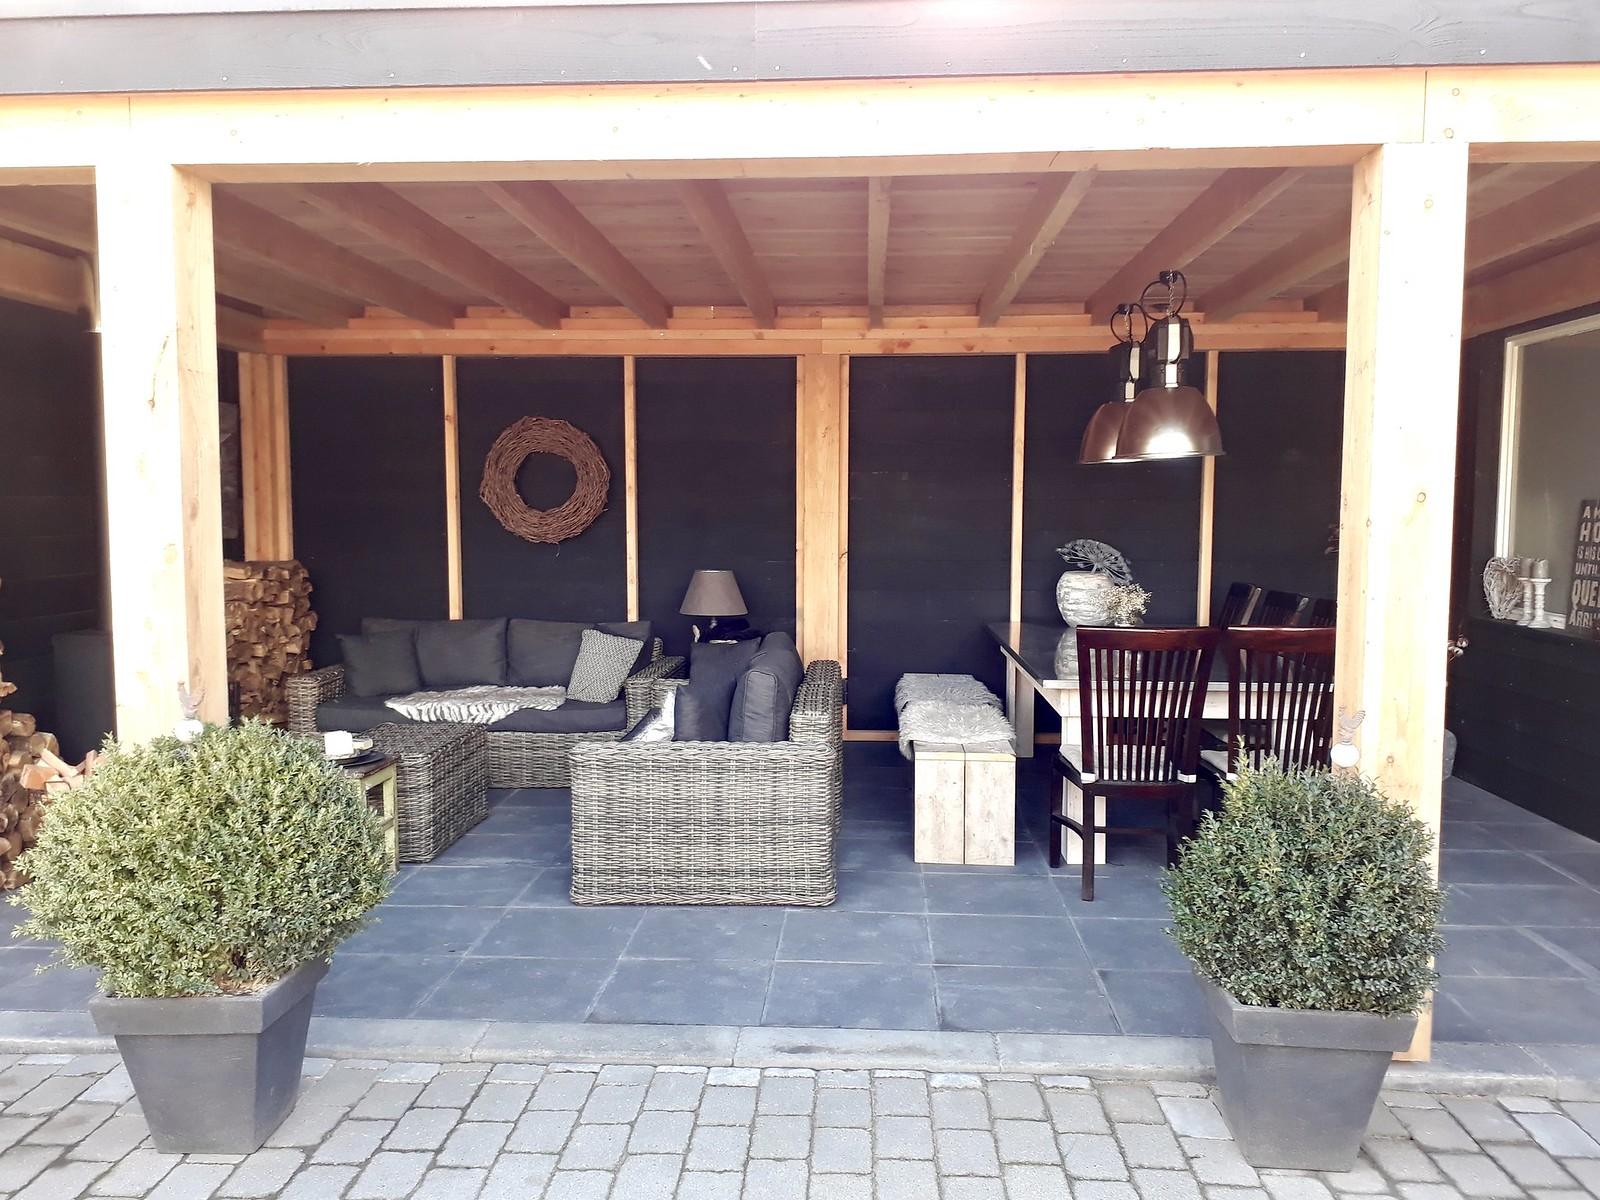 Inrichting Overkapping Tuin : Tuin overkapping inrichting tuin overkapping buitenbar piz zapp